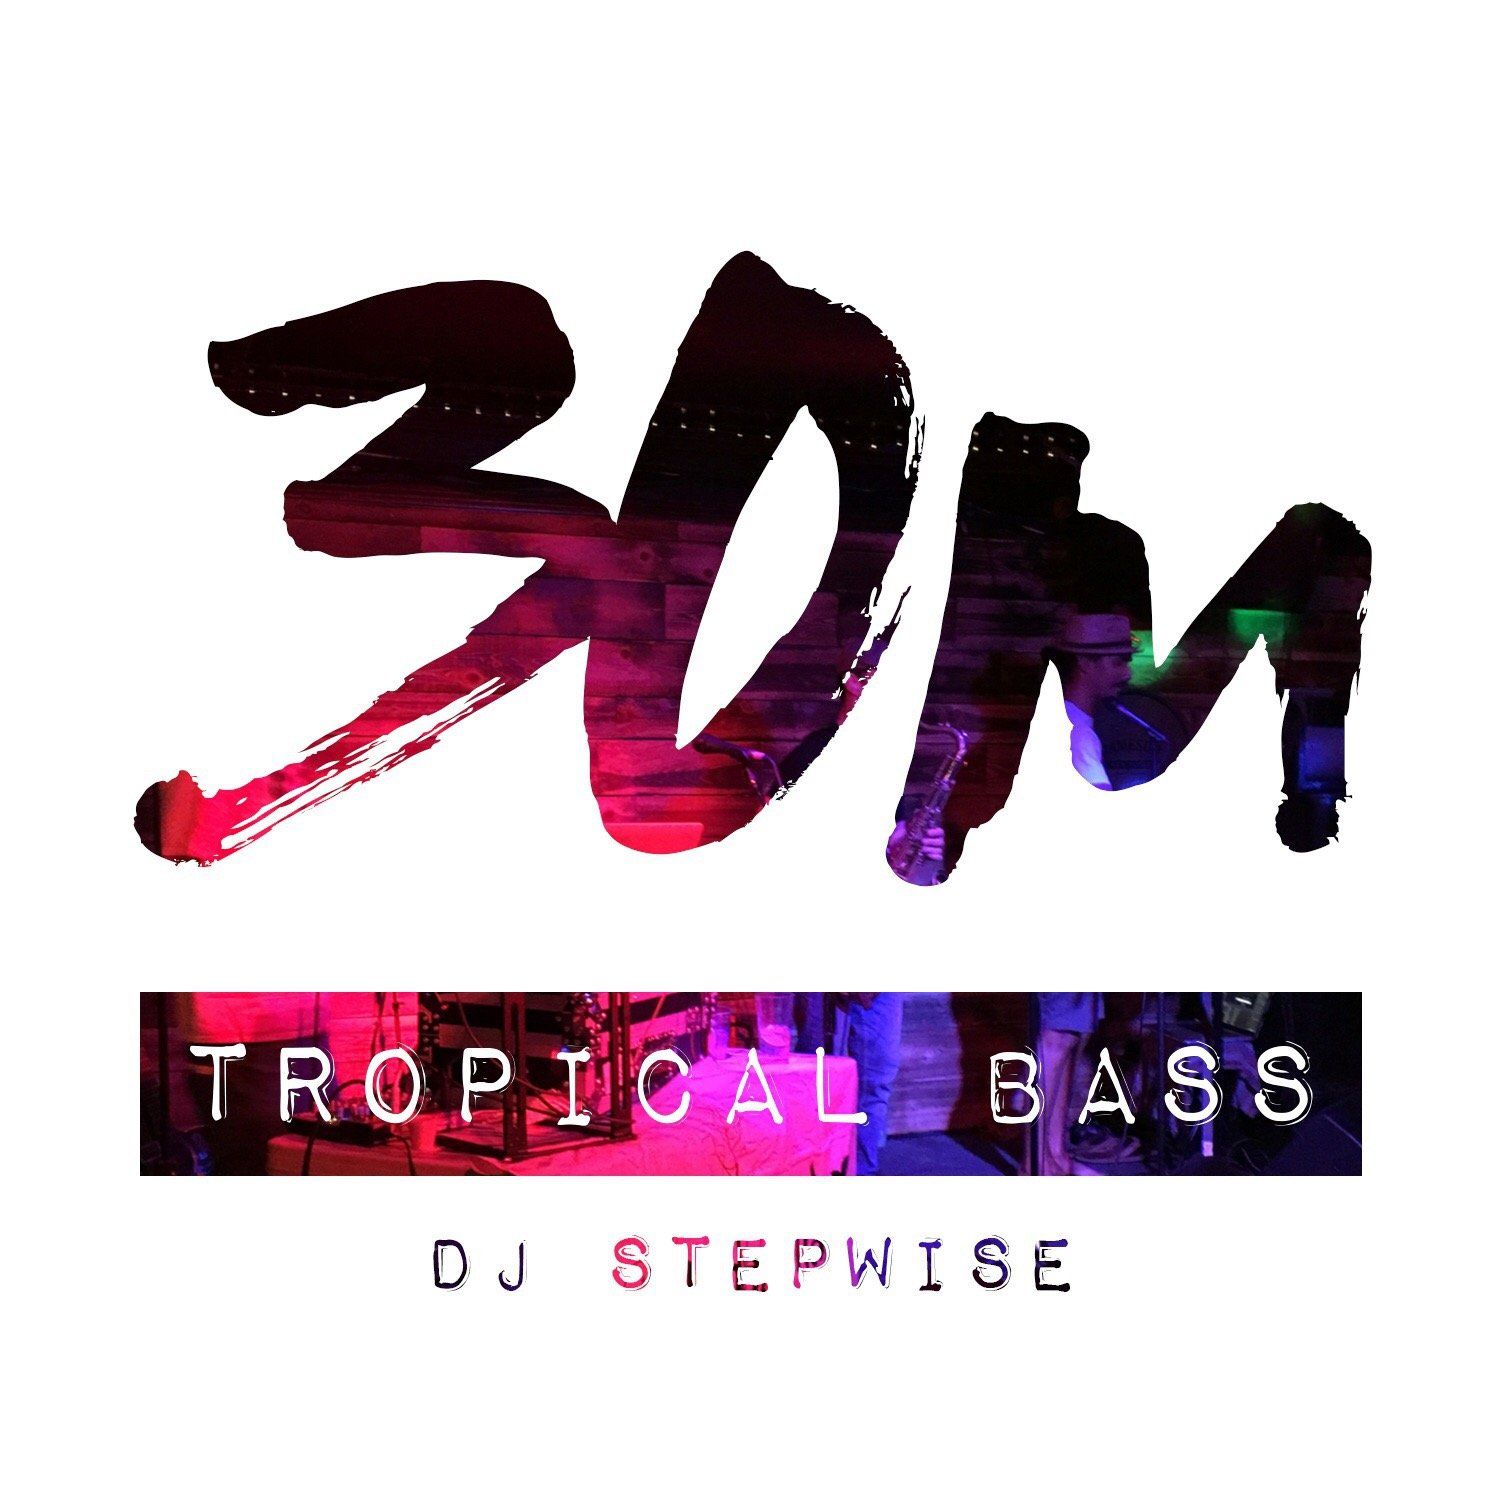 001: Tropical Bass  - DJ Stepwise (San Diego)